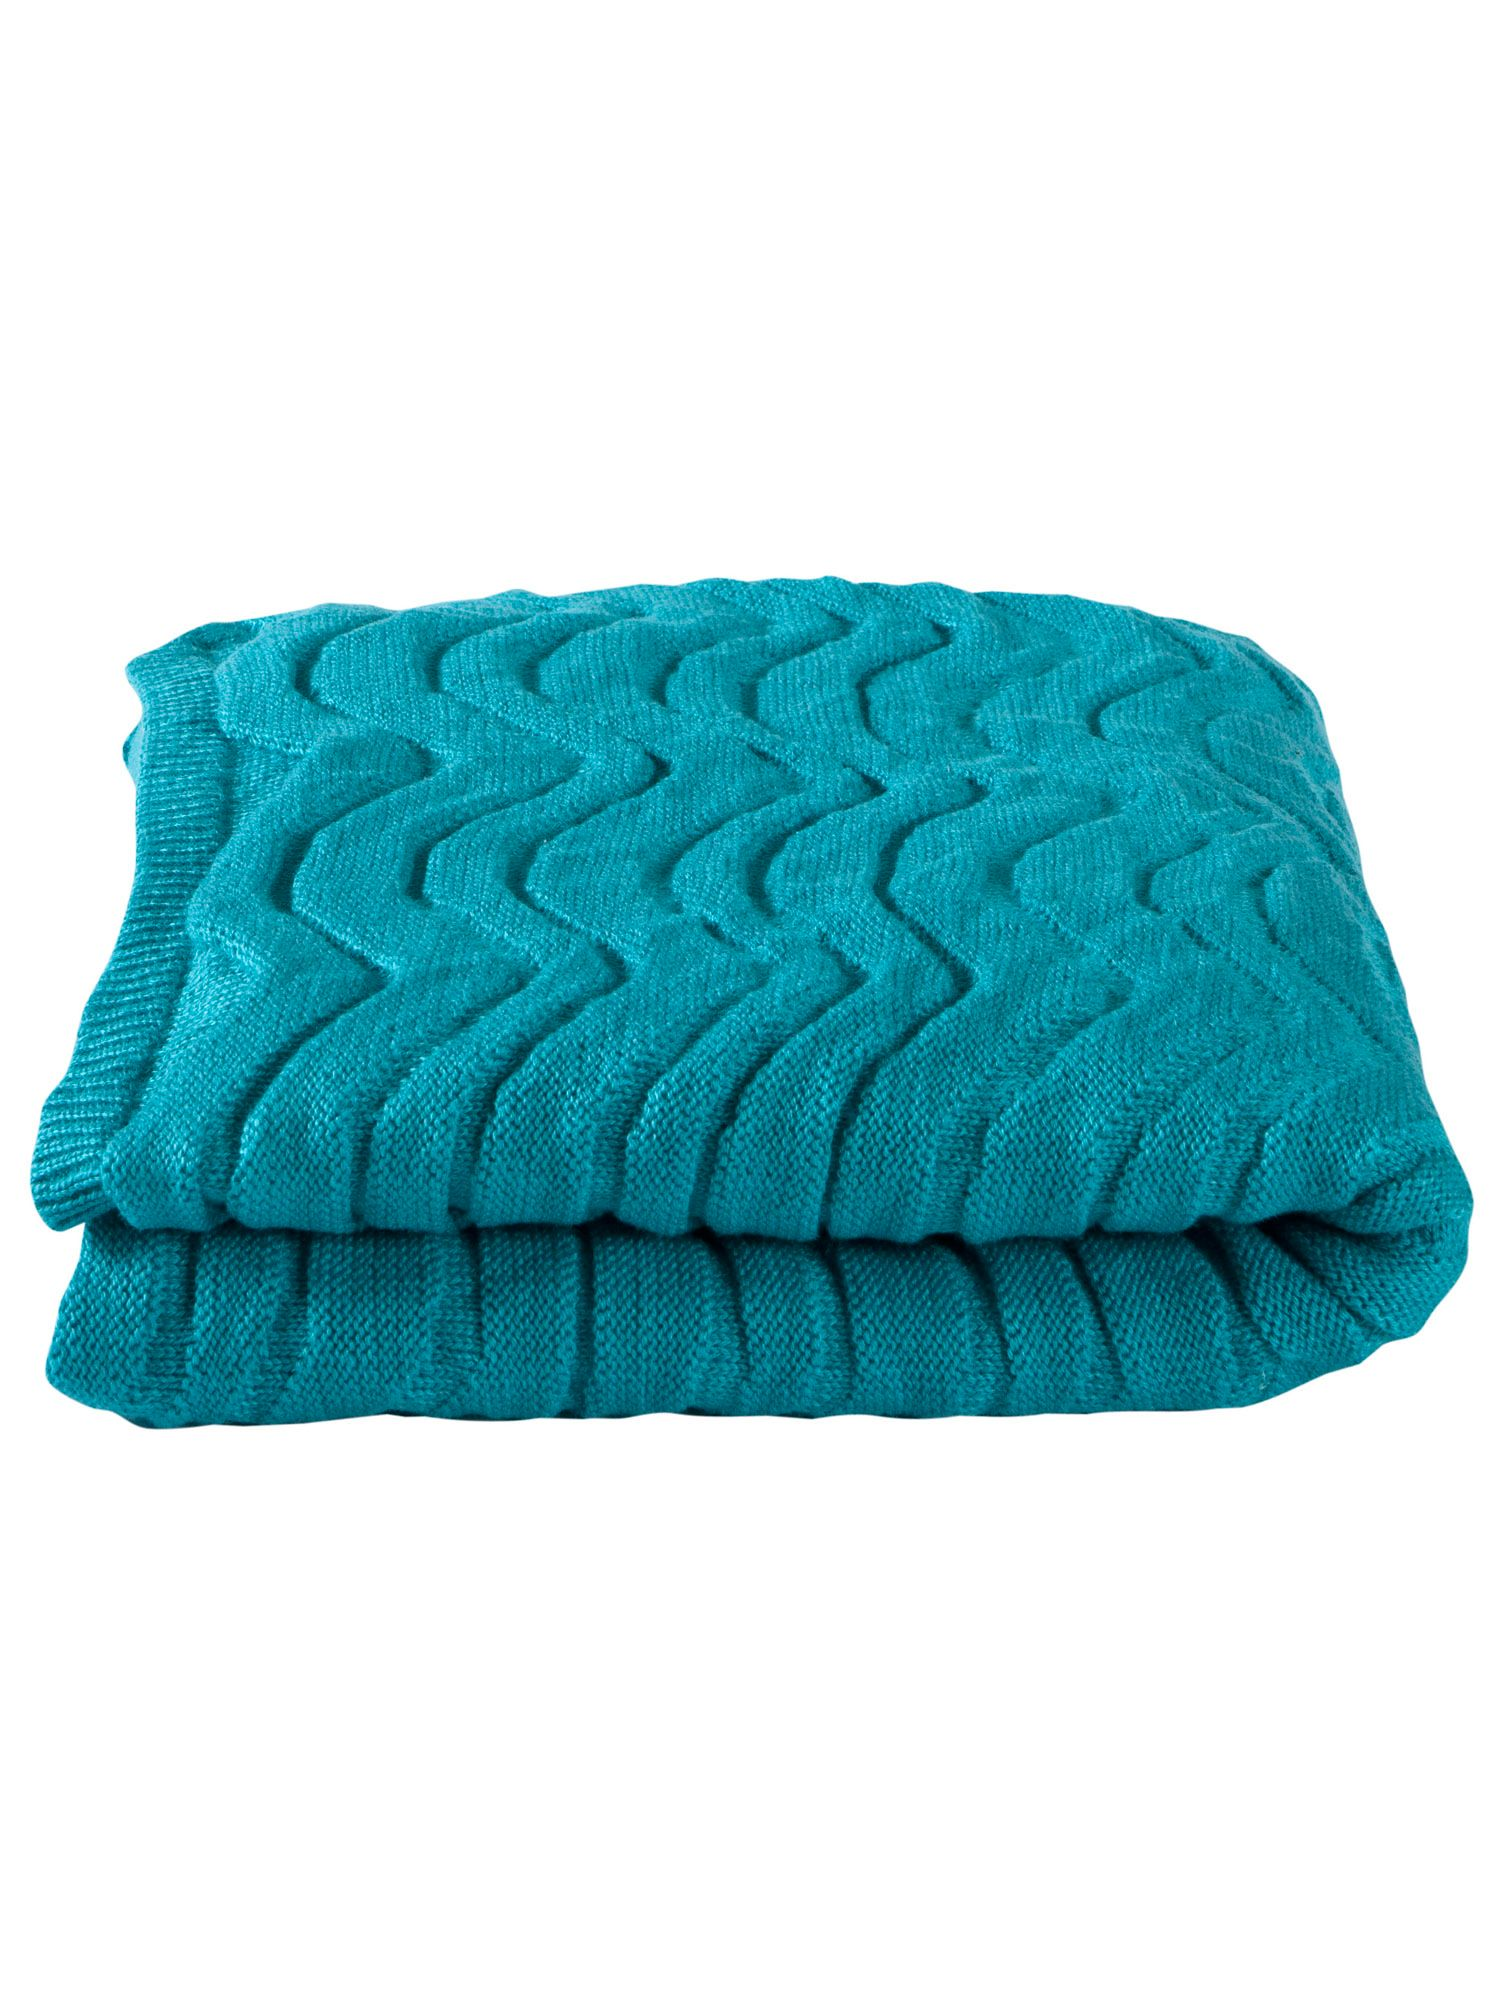 Wavey throw one size teal